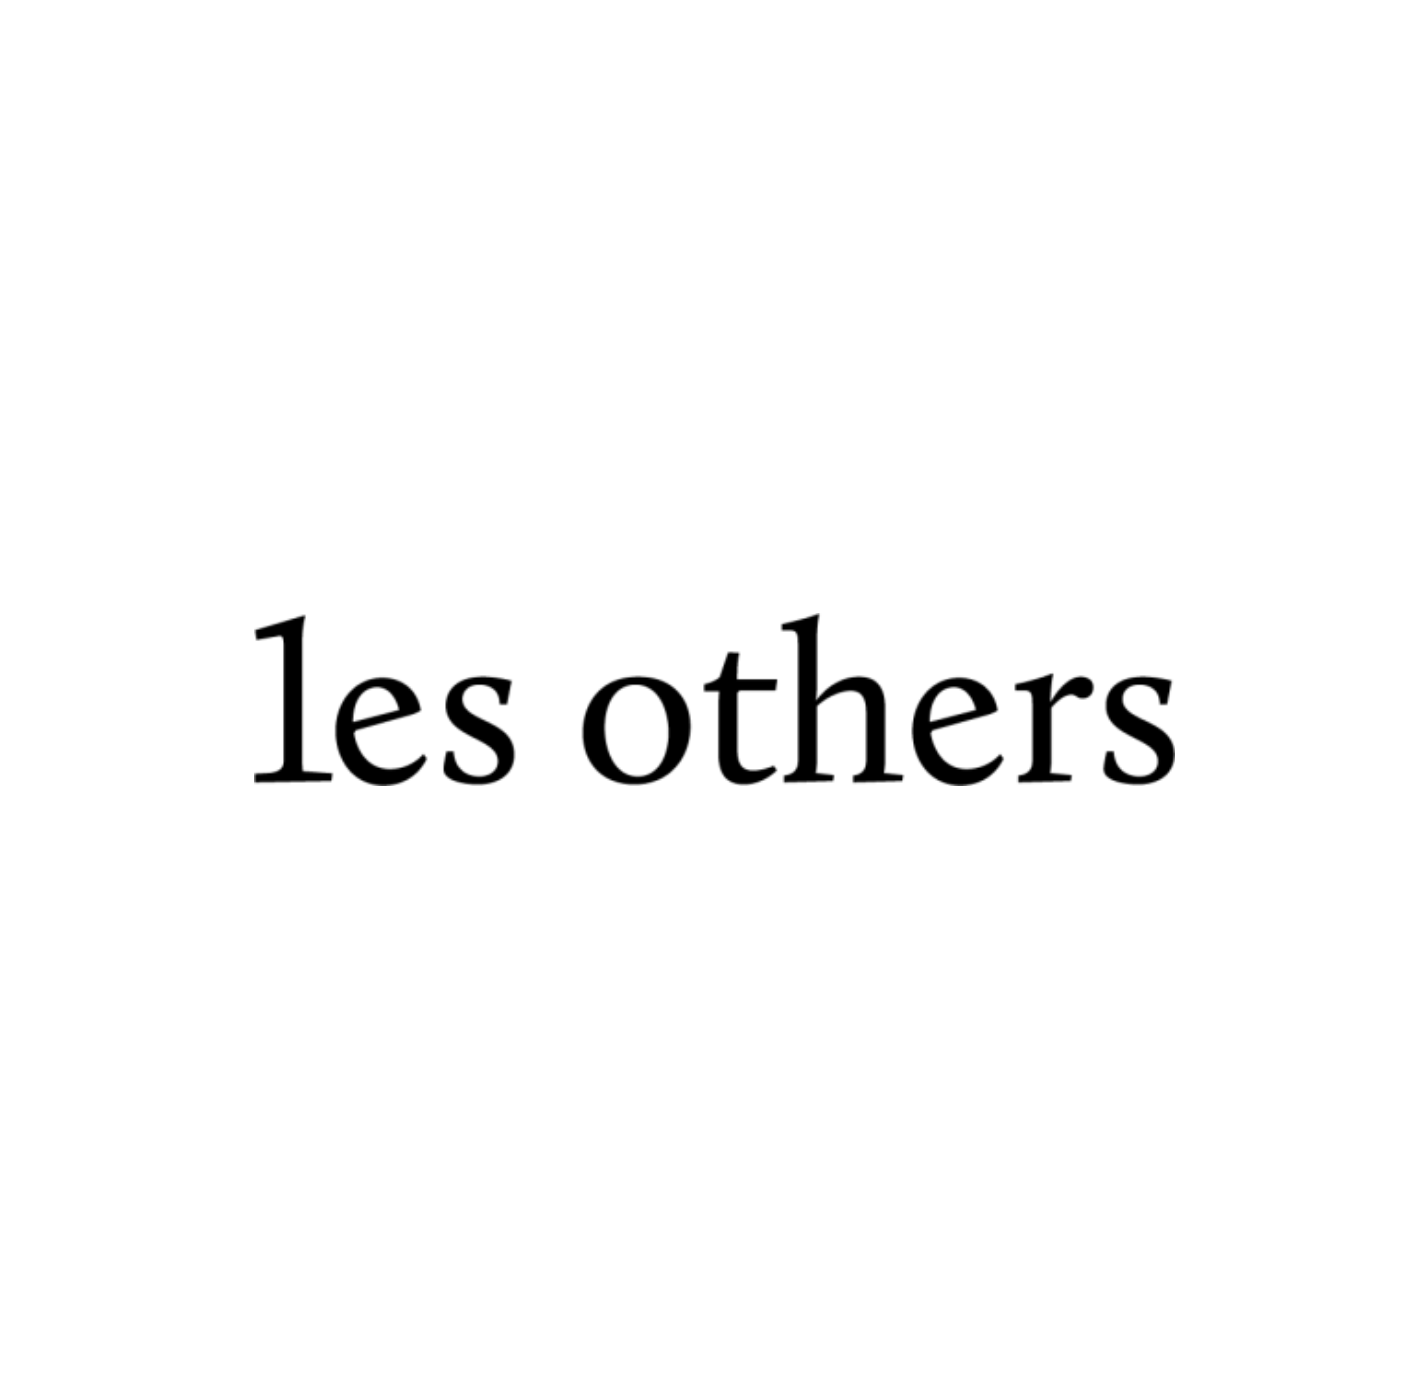 Les Others logo Joost Bastmeijer